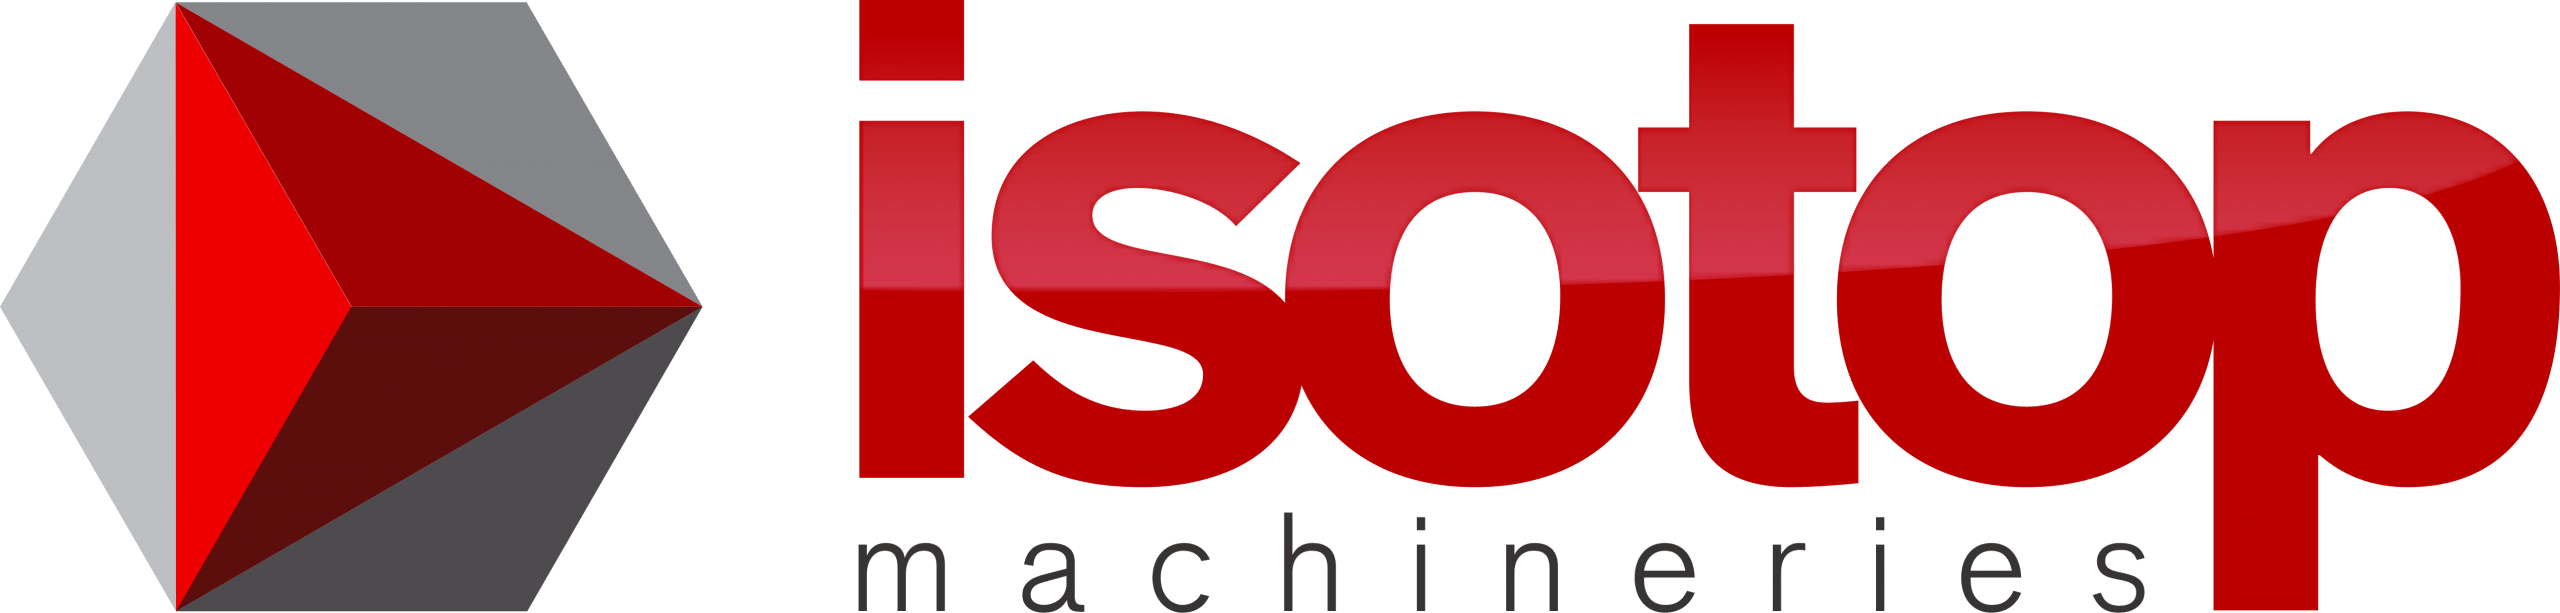 Machineries Isotop Logo